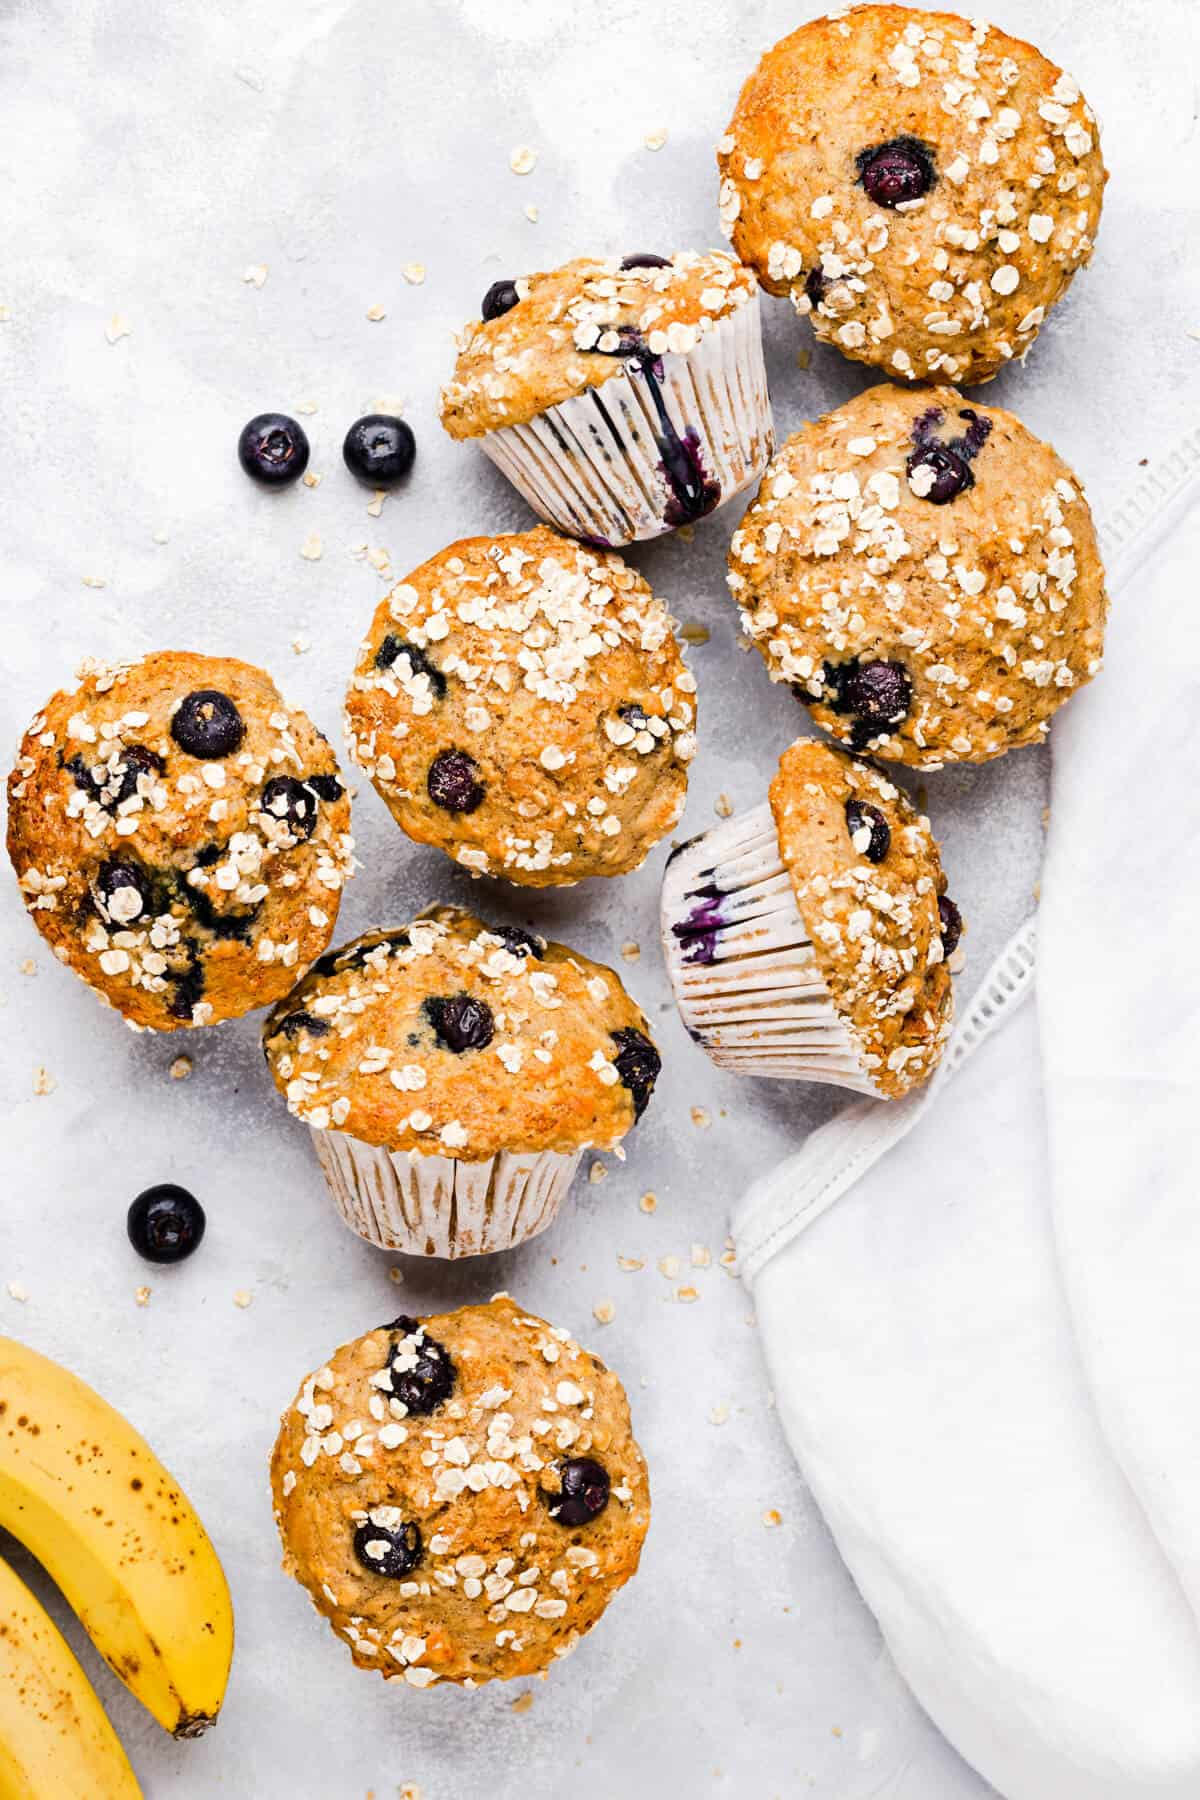 top view of muffins with blueberries and bananas